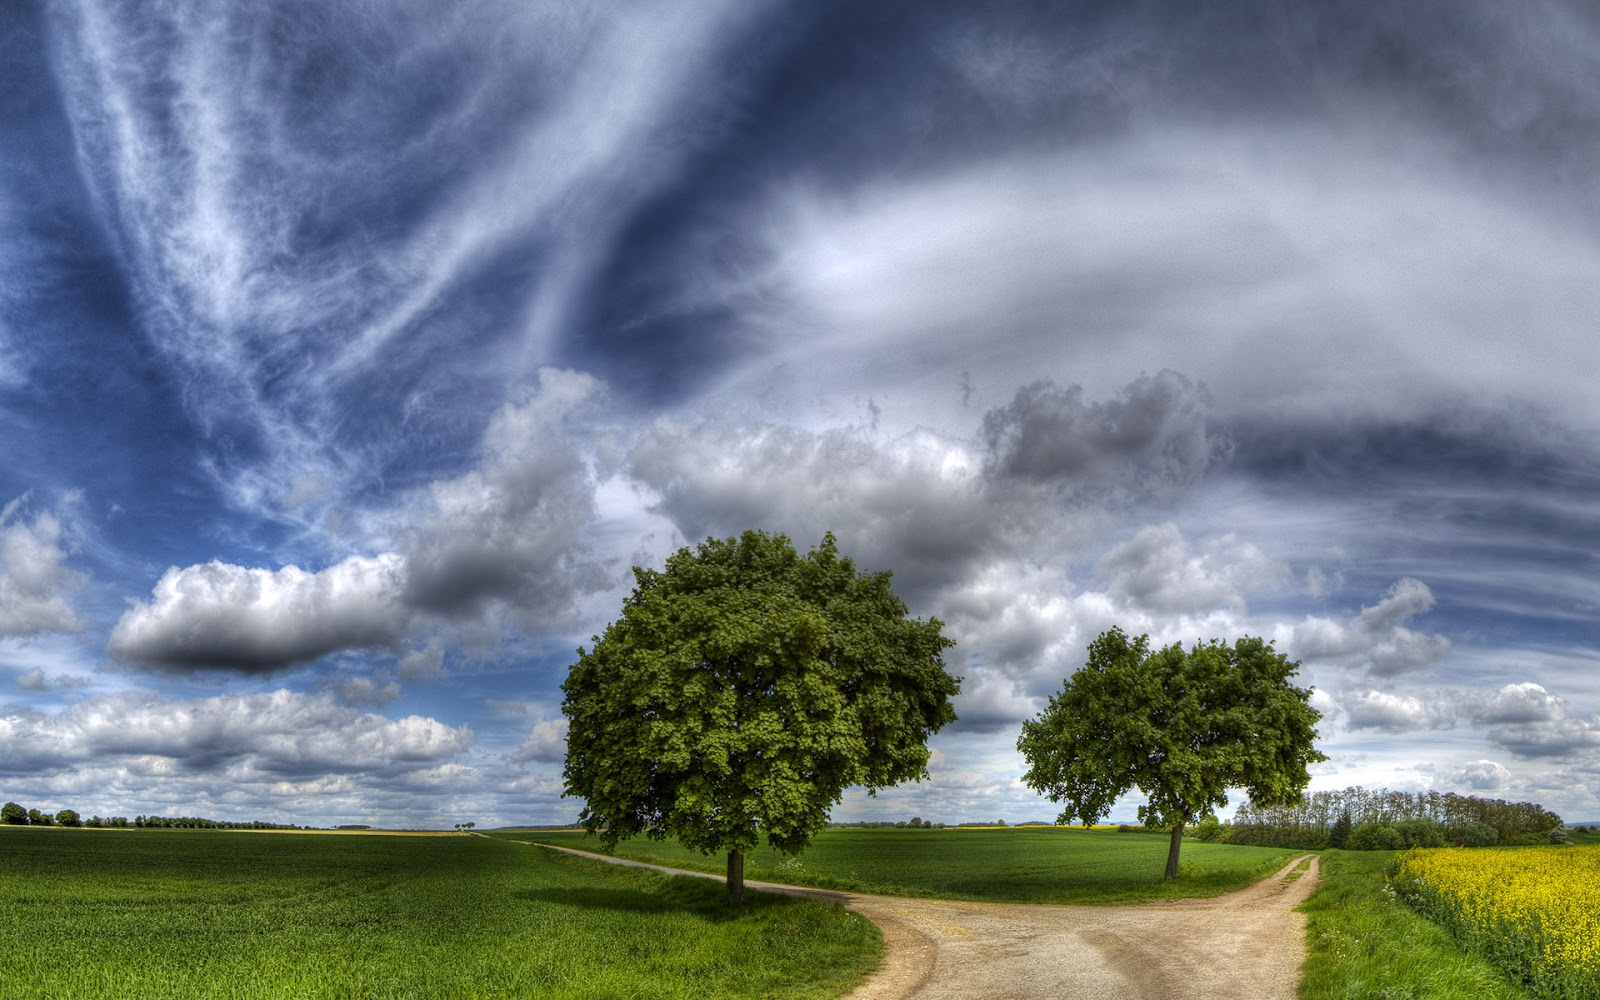 Free HD Images (FIFCU Purchased): 19 Clouds and Scenary